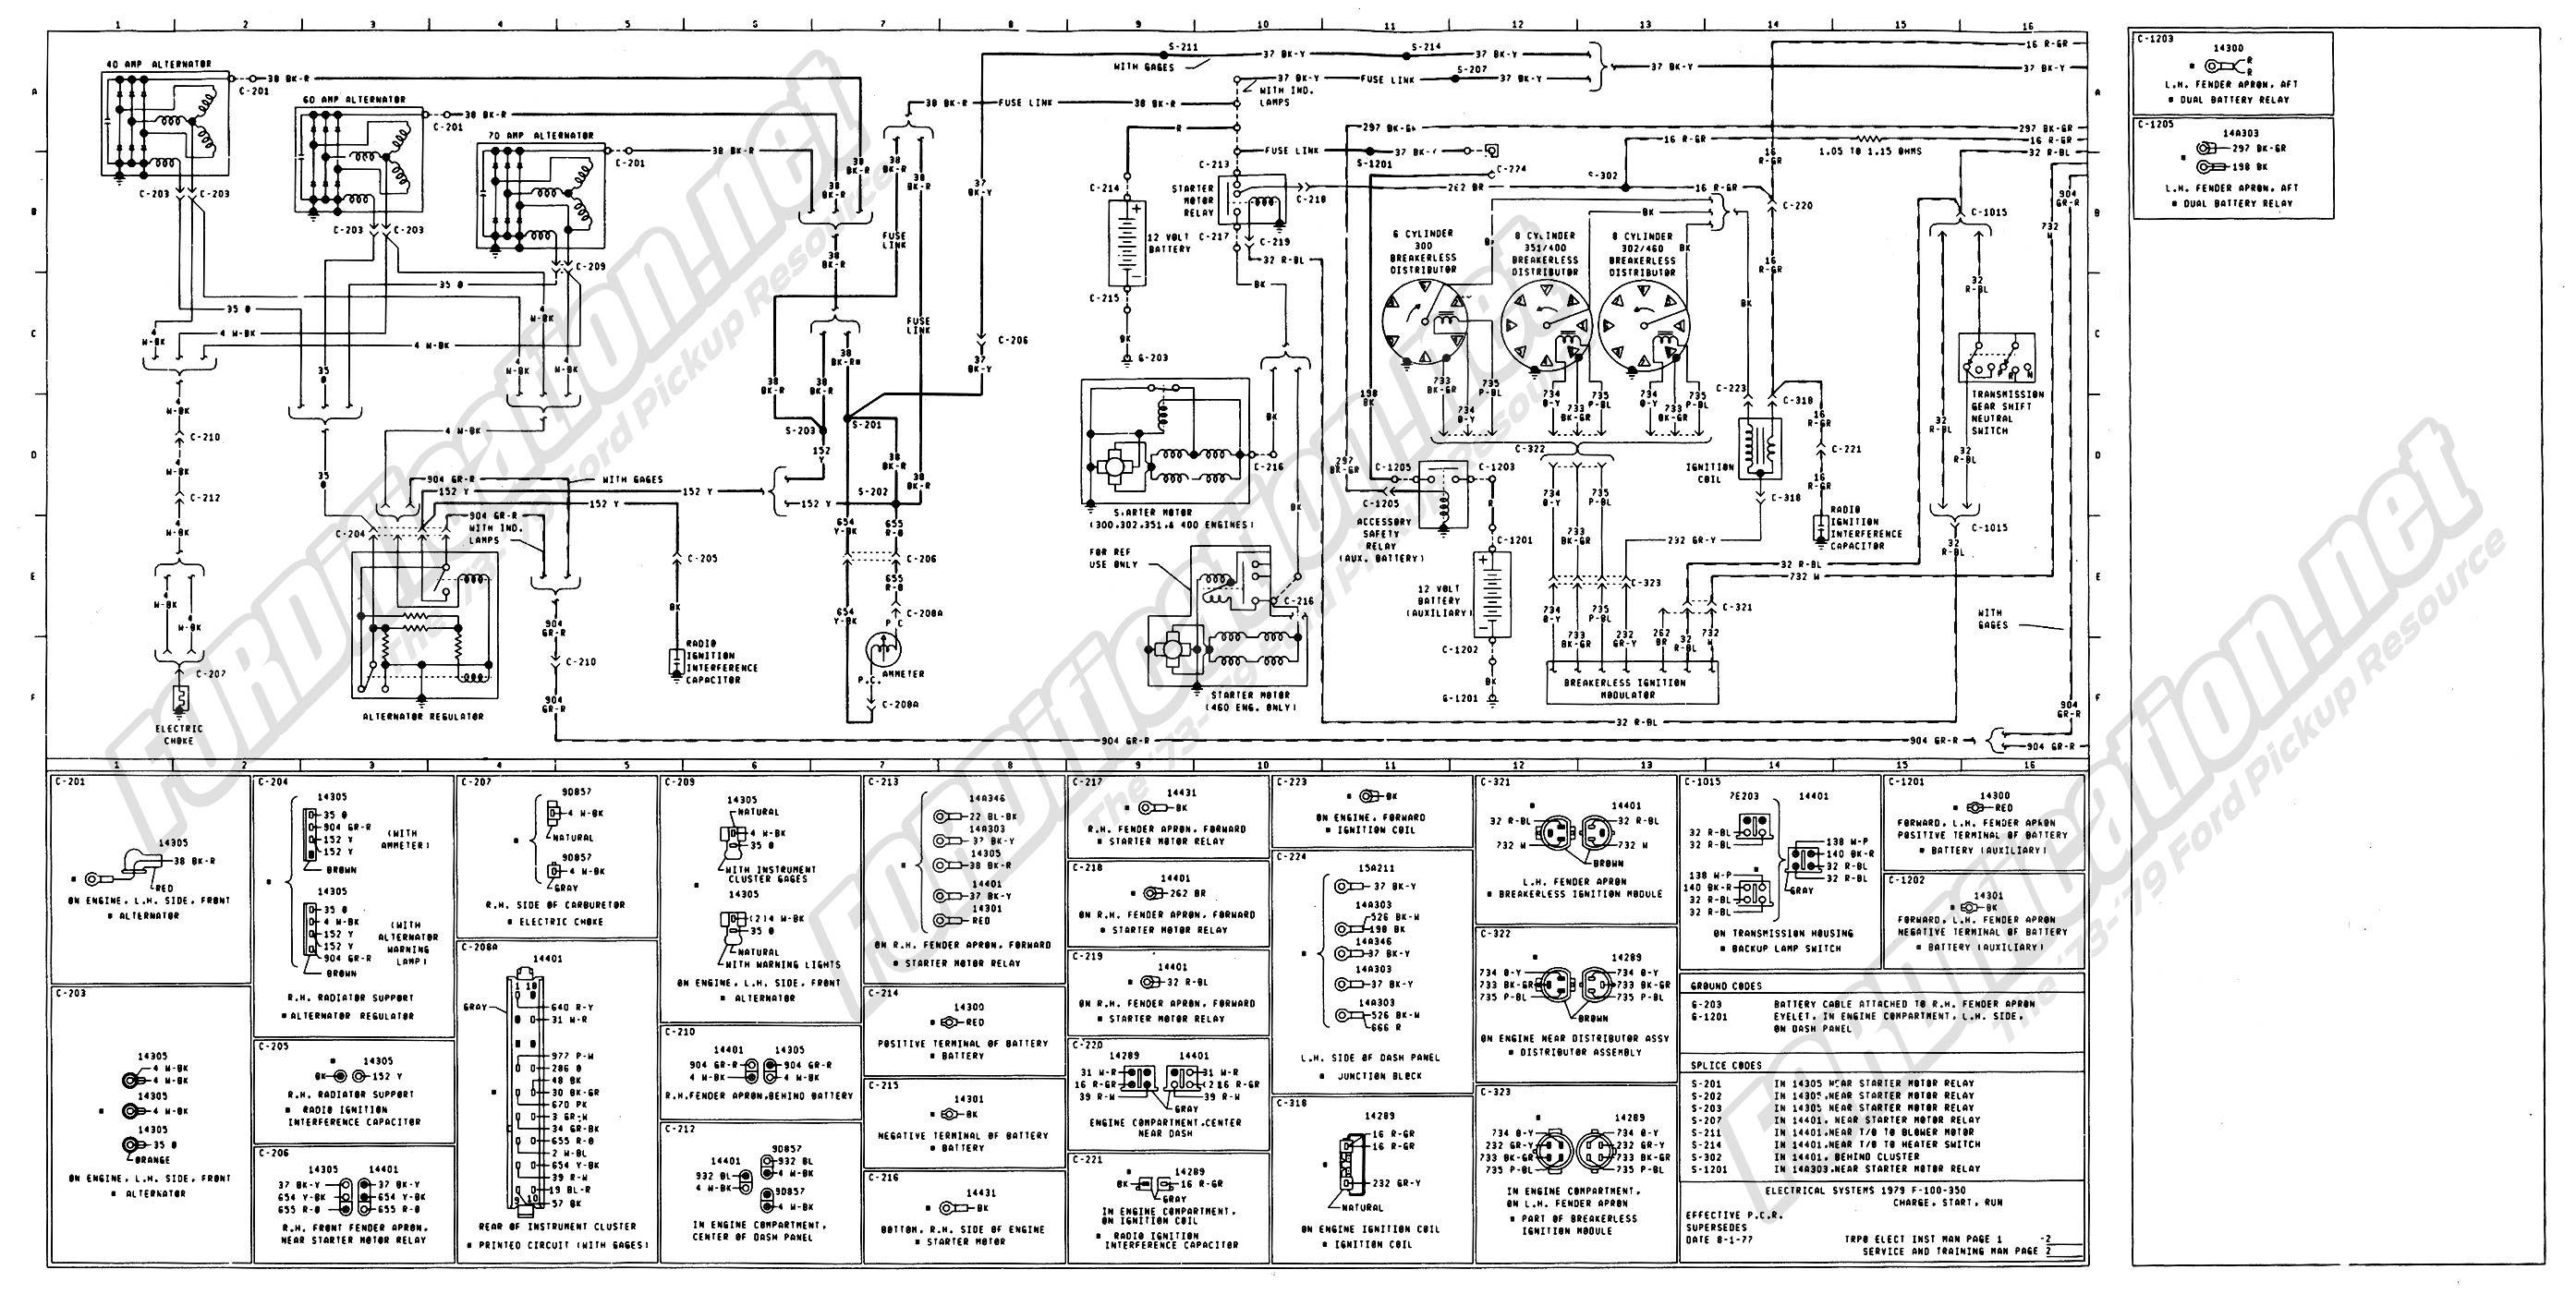 2006 Mustang Wiring Schematic Library 1992 1975 Ford F100 Diagrams Starting Know About Diagram U2022